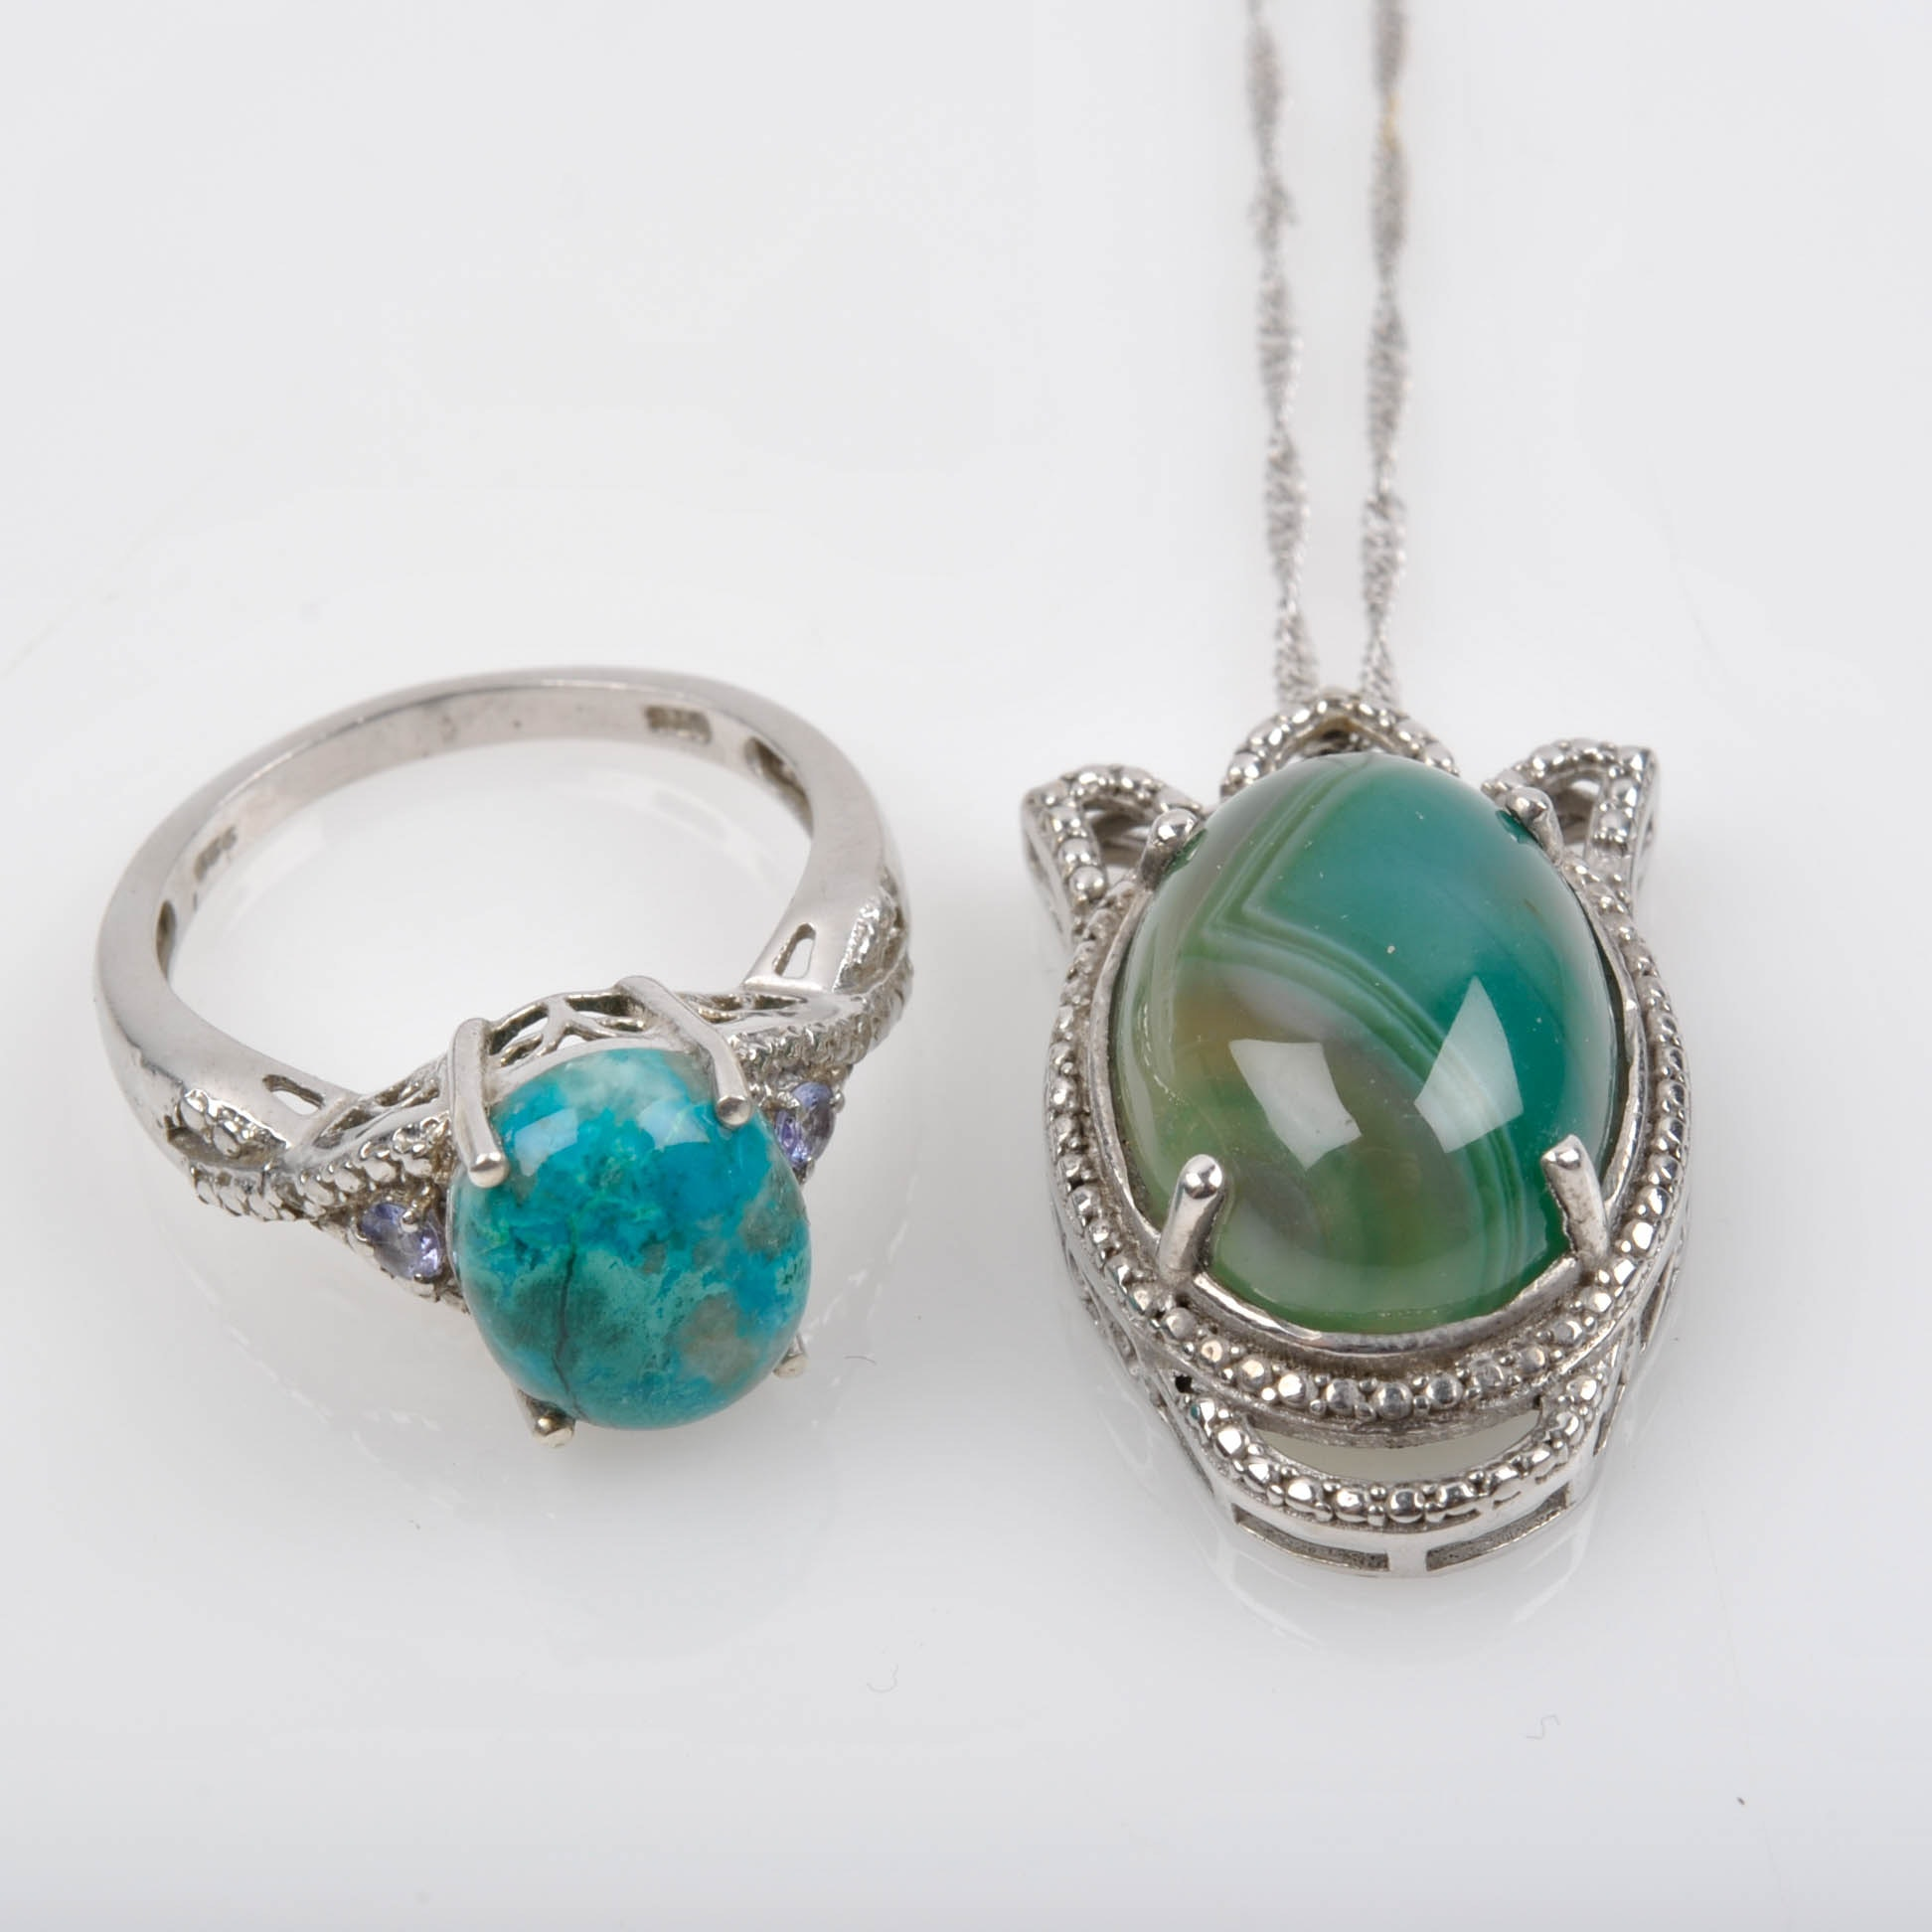 Sterling Silver Eilat Stone Ring and 10K White Gold Chain with Agate Pendant